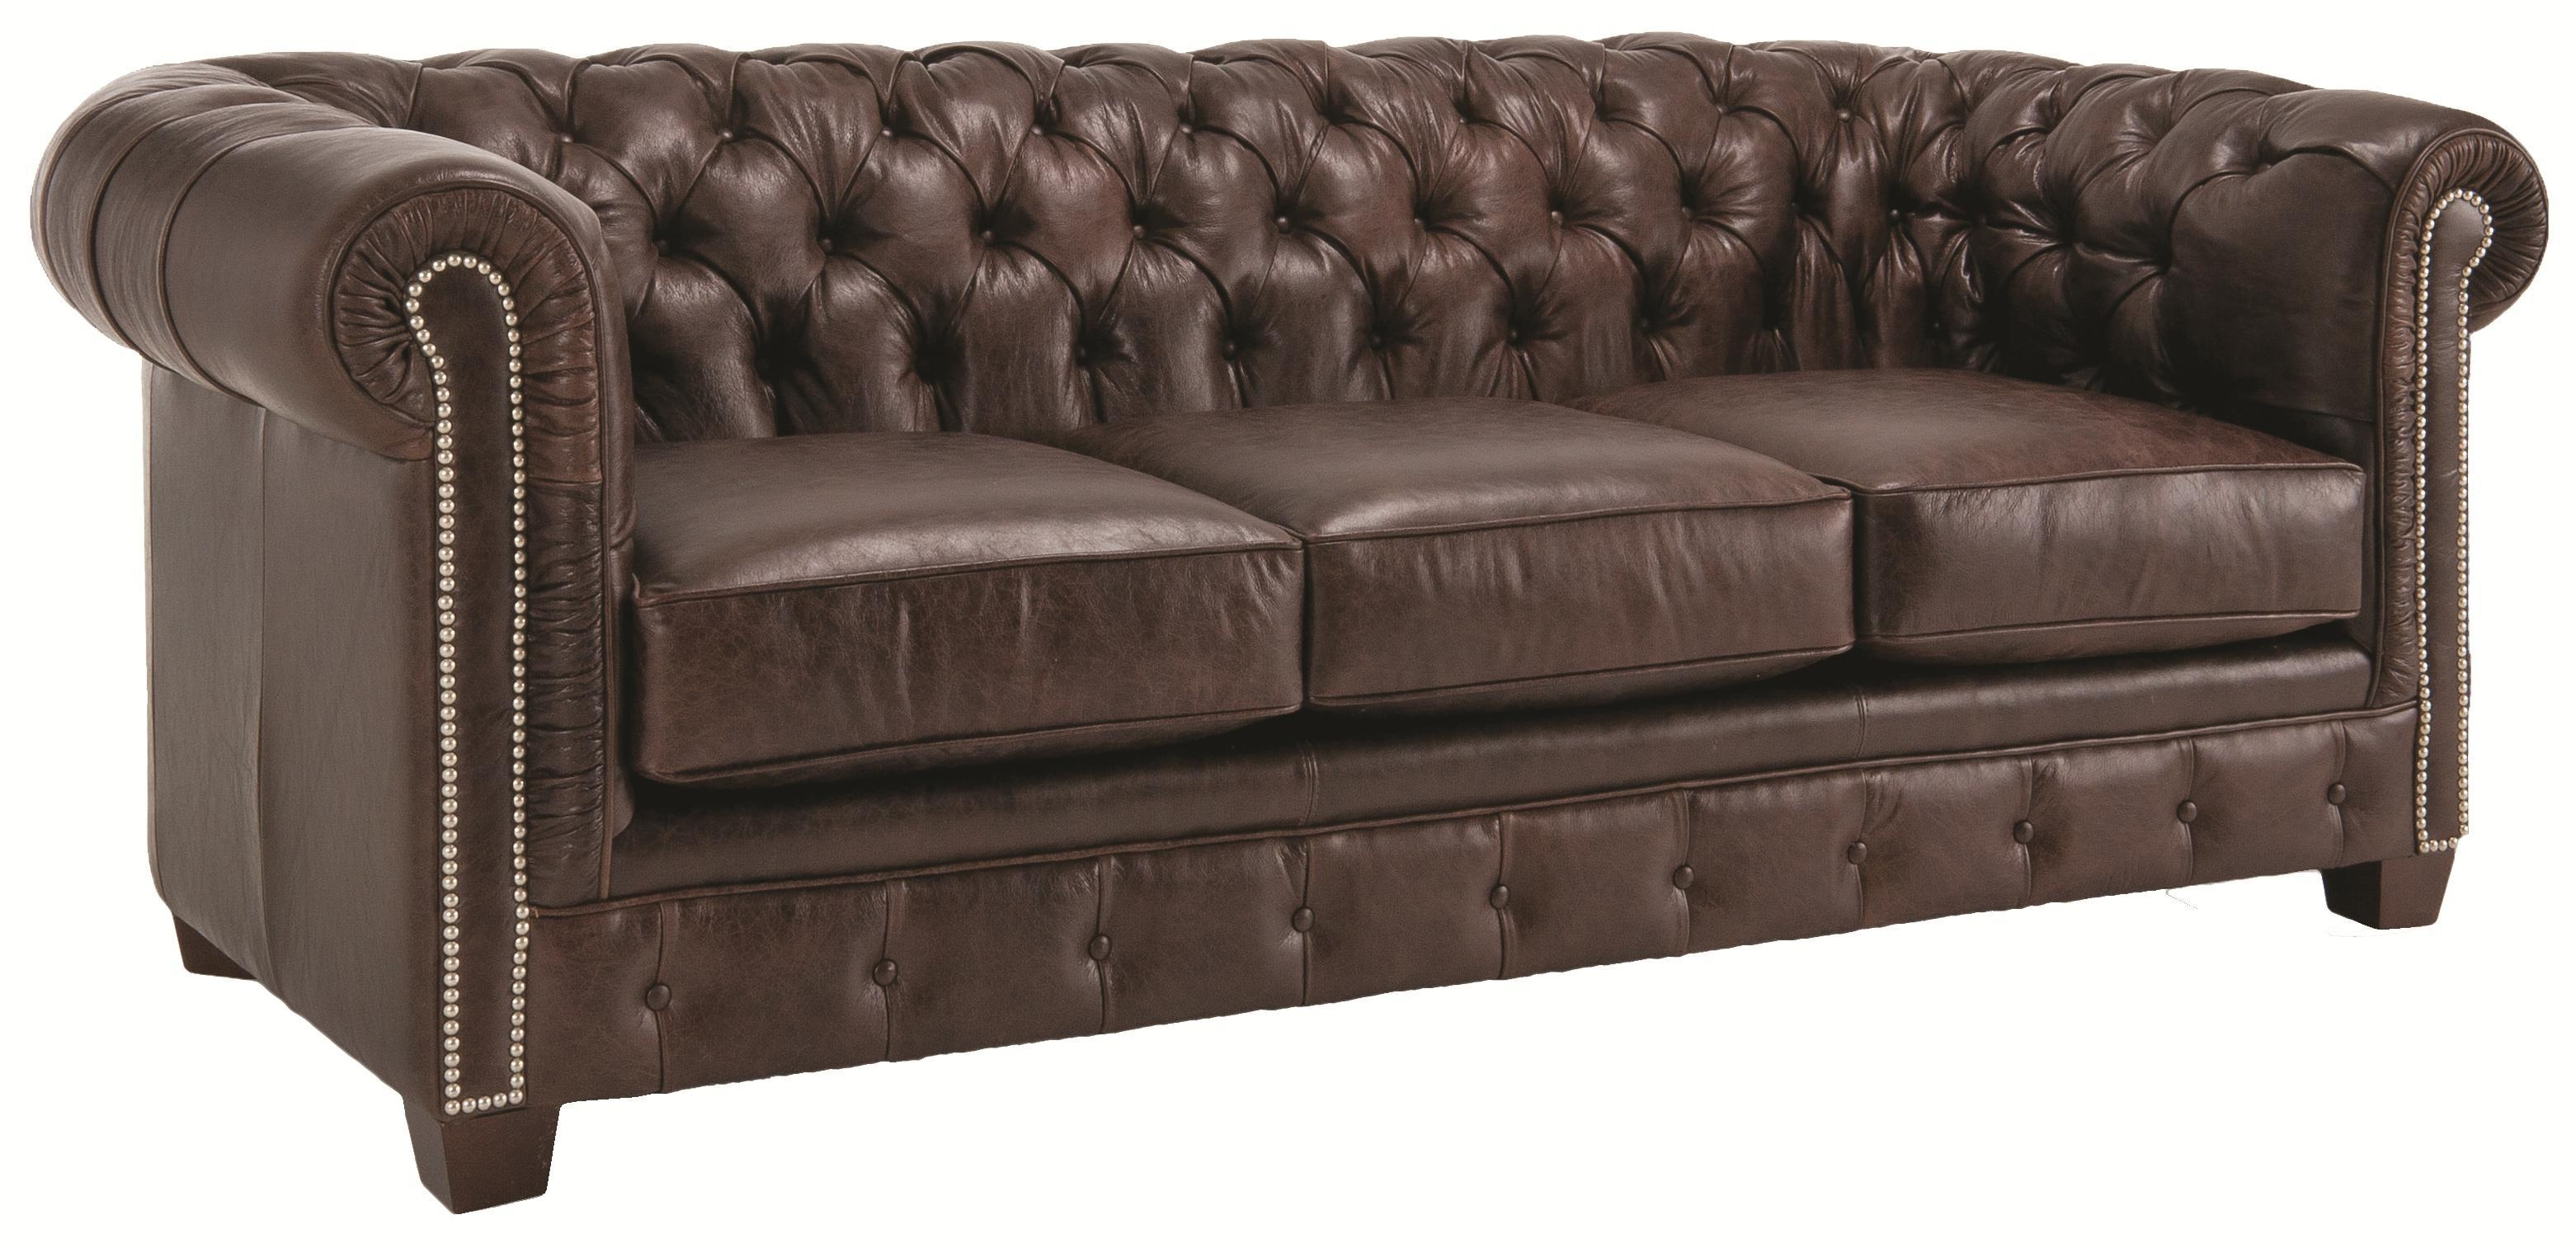 Churchill Tufted Leather Sofa | Living Expressions – Furniture Pertaining To Churchill Sofas (View 3 of 20)